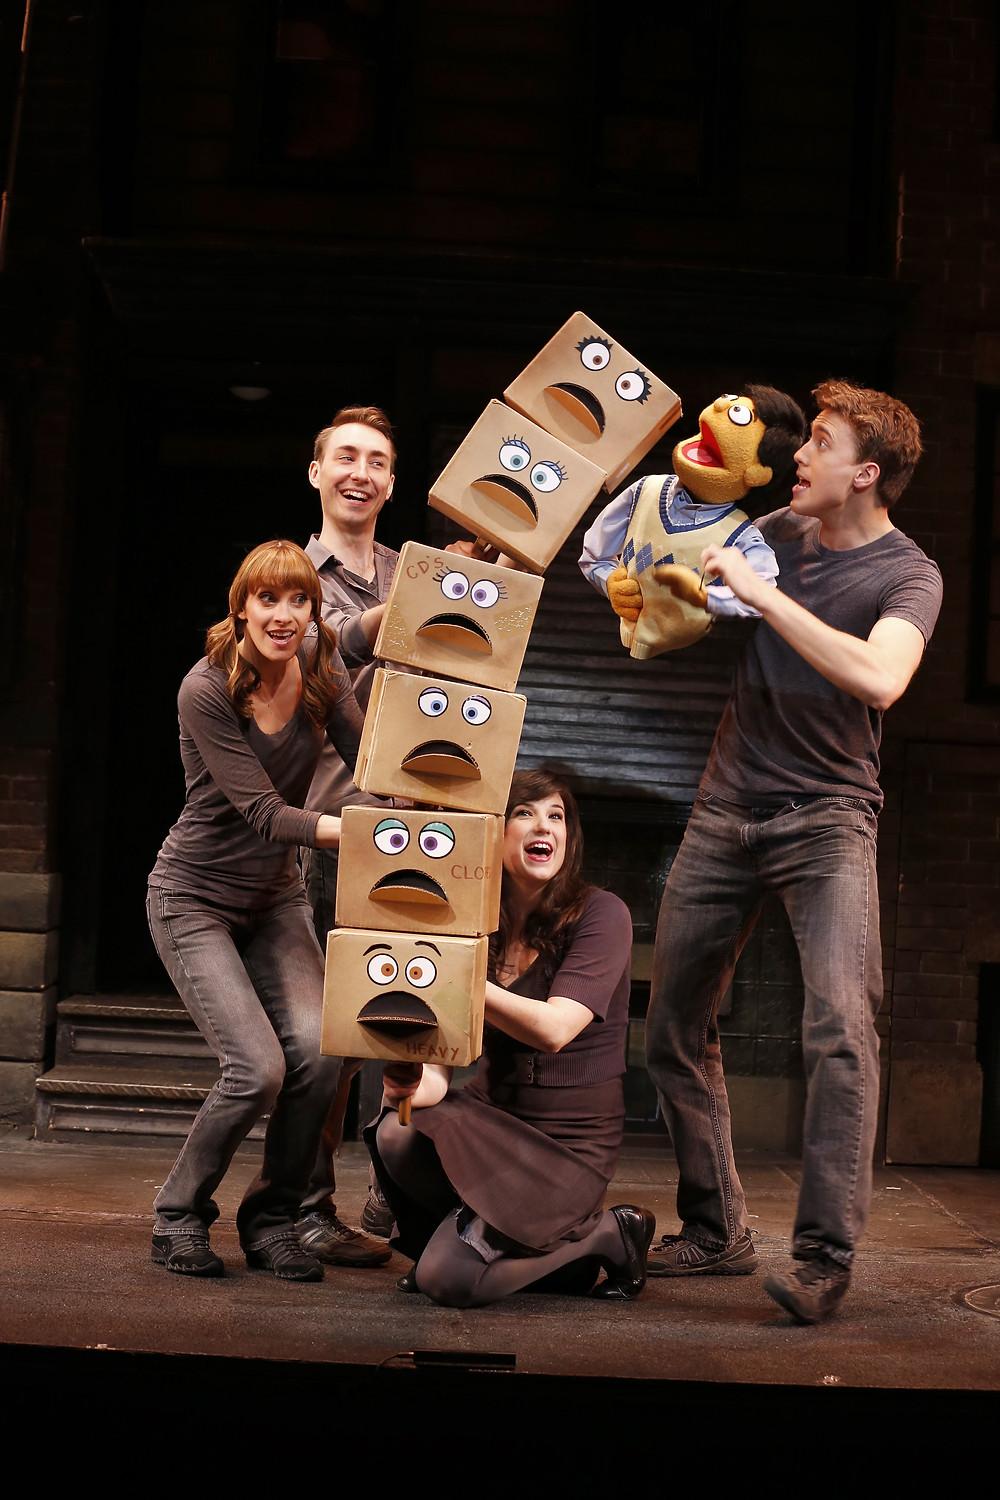 Lexy Fridell, Jason Jacoby, Veronica Kuehn and Darren Bluestone | 2013 |  Avenue Q